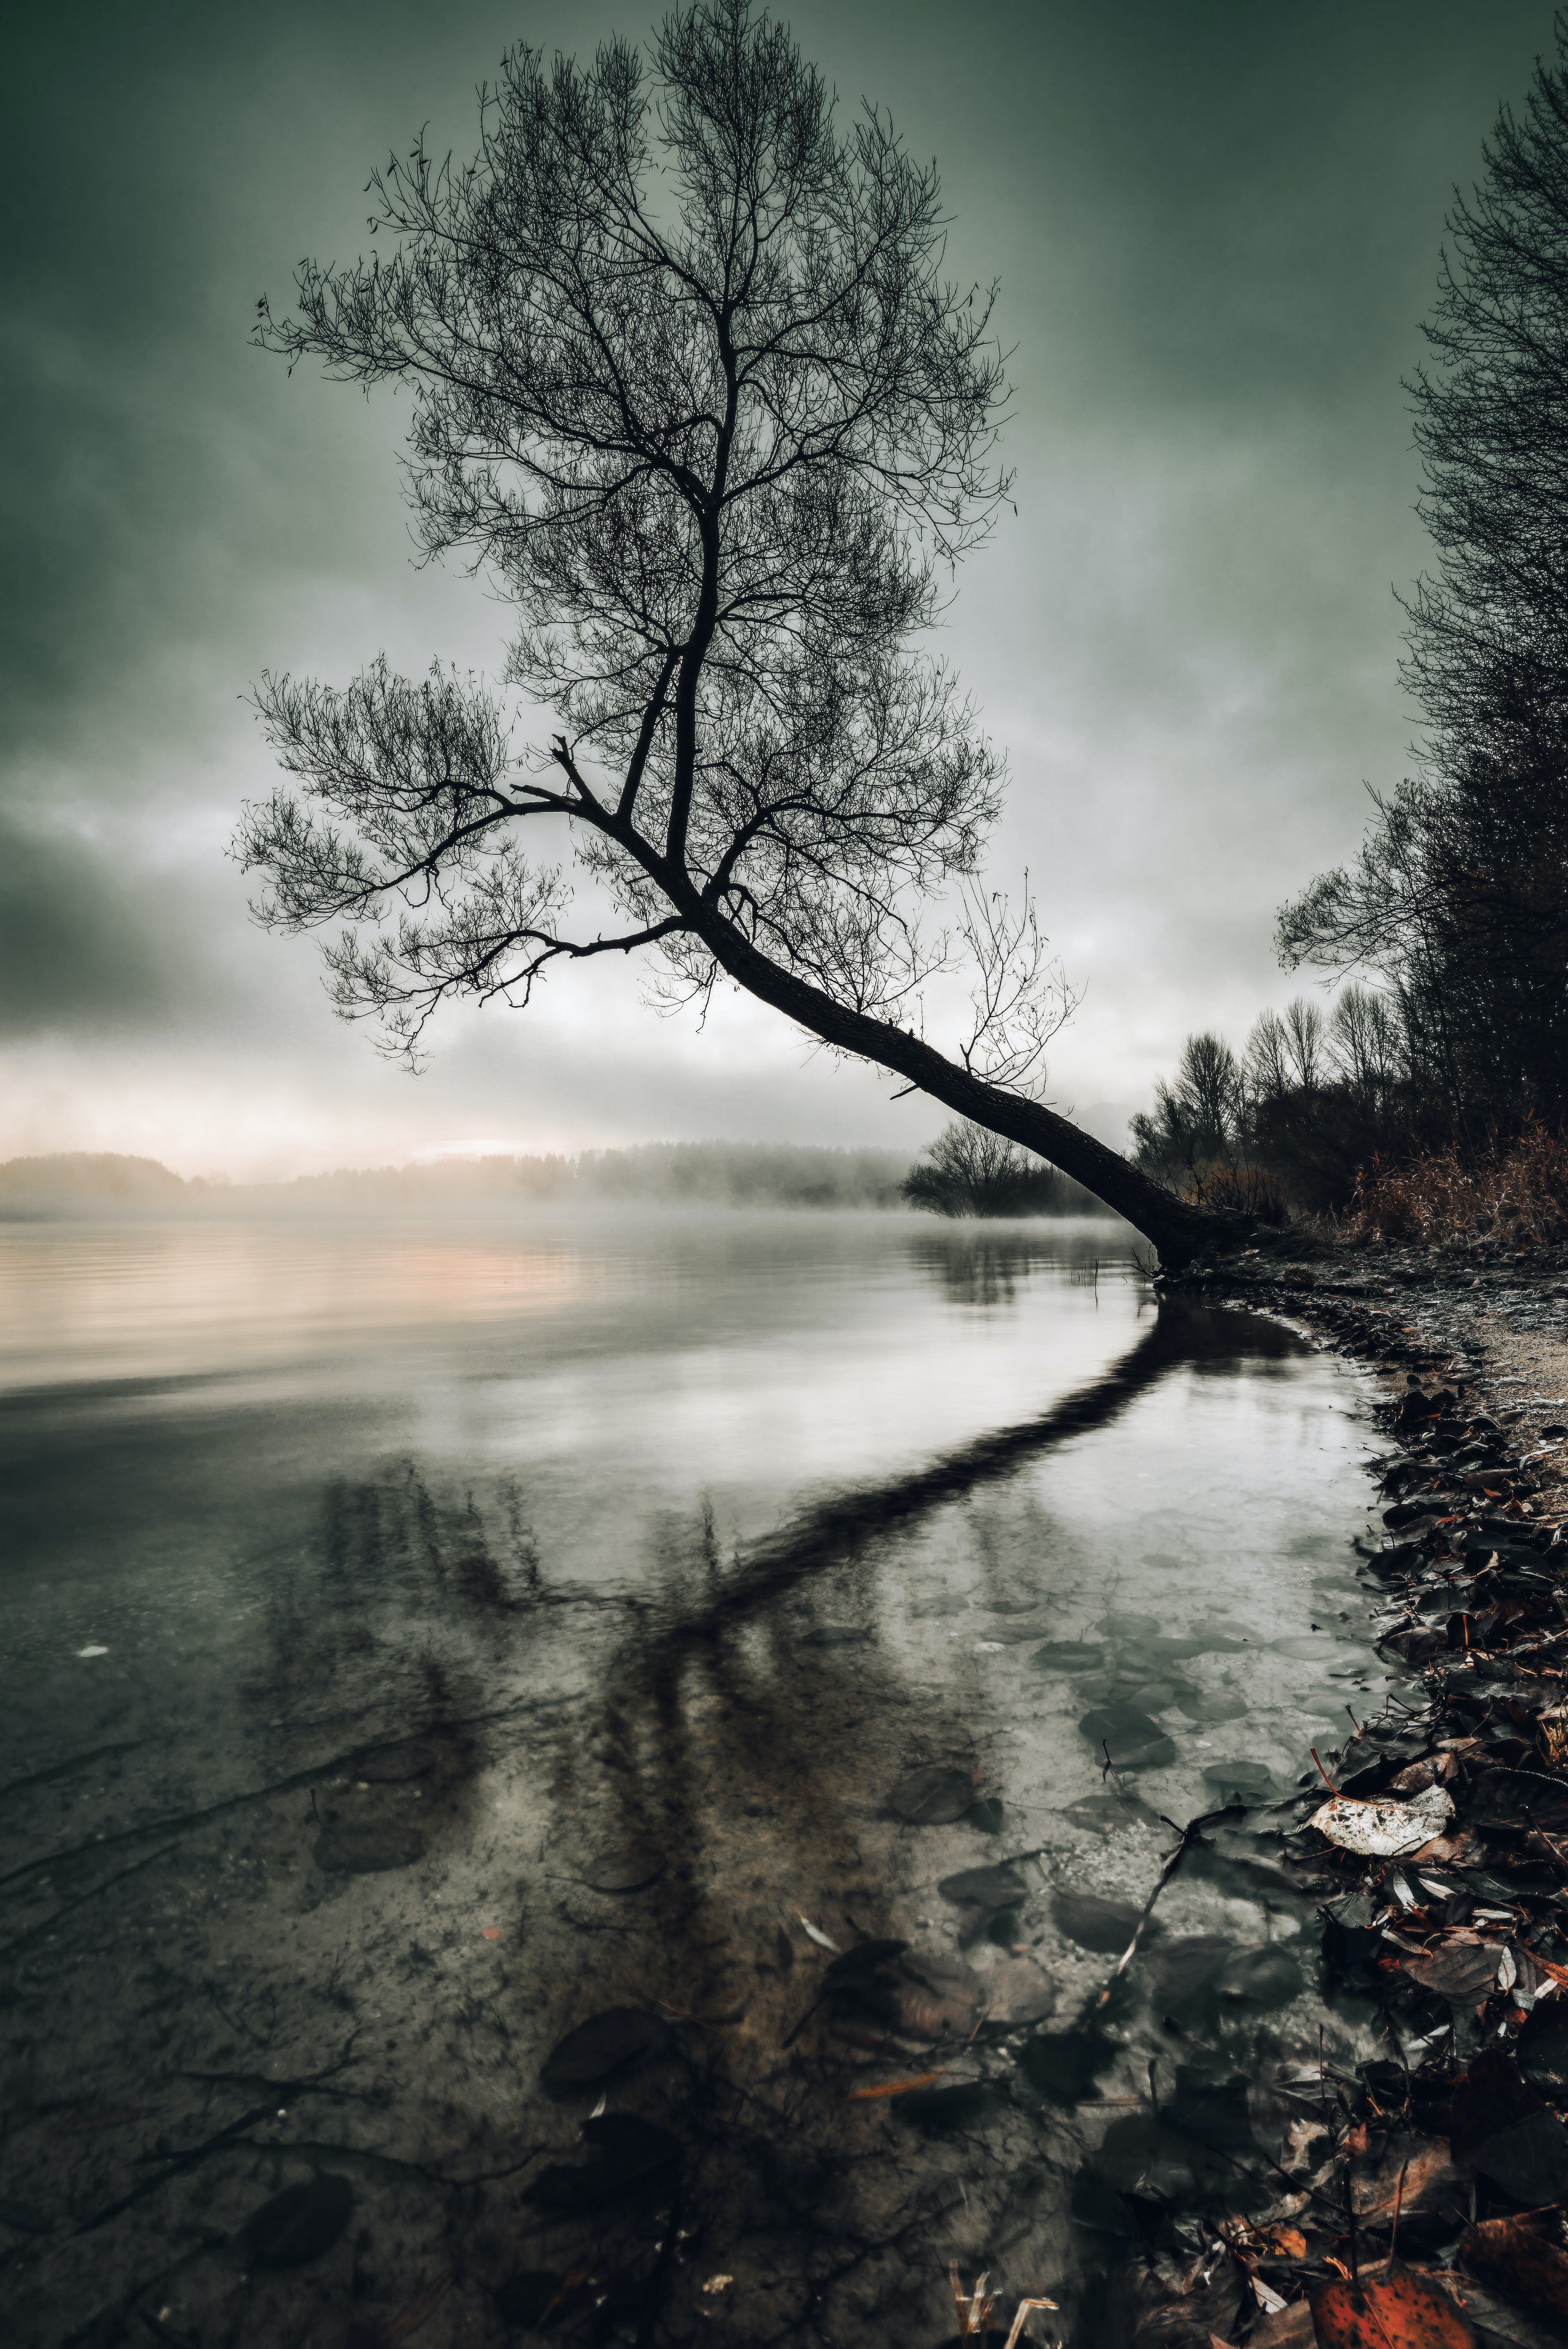 grayscale photo of tree beside body of water